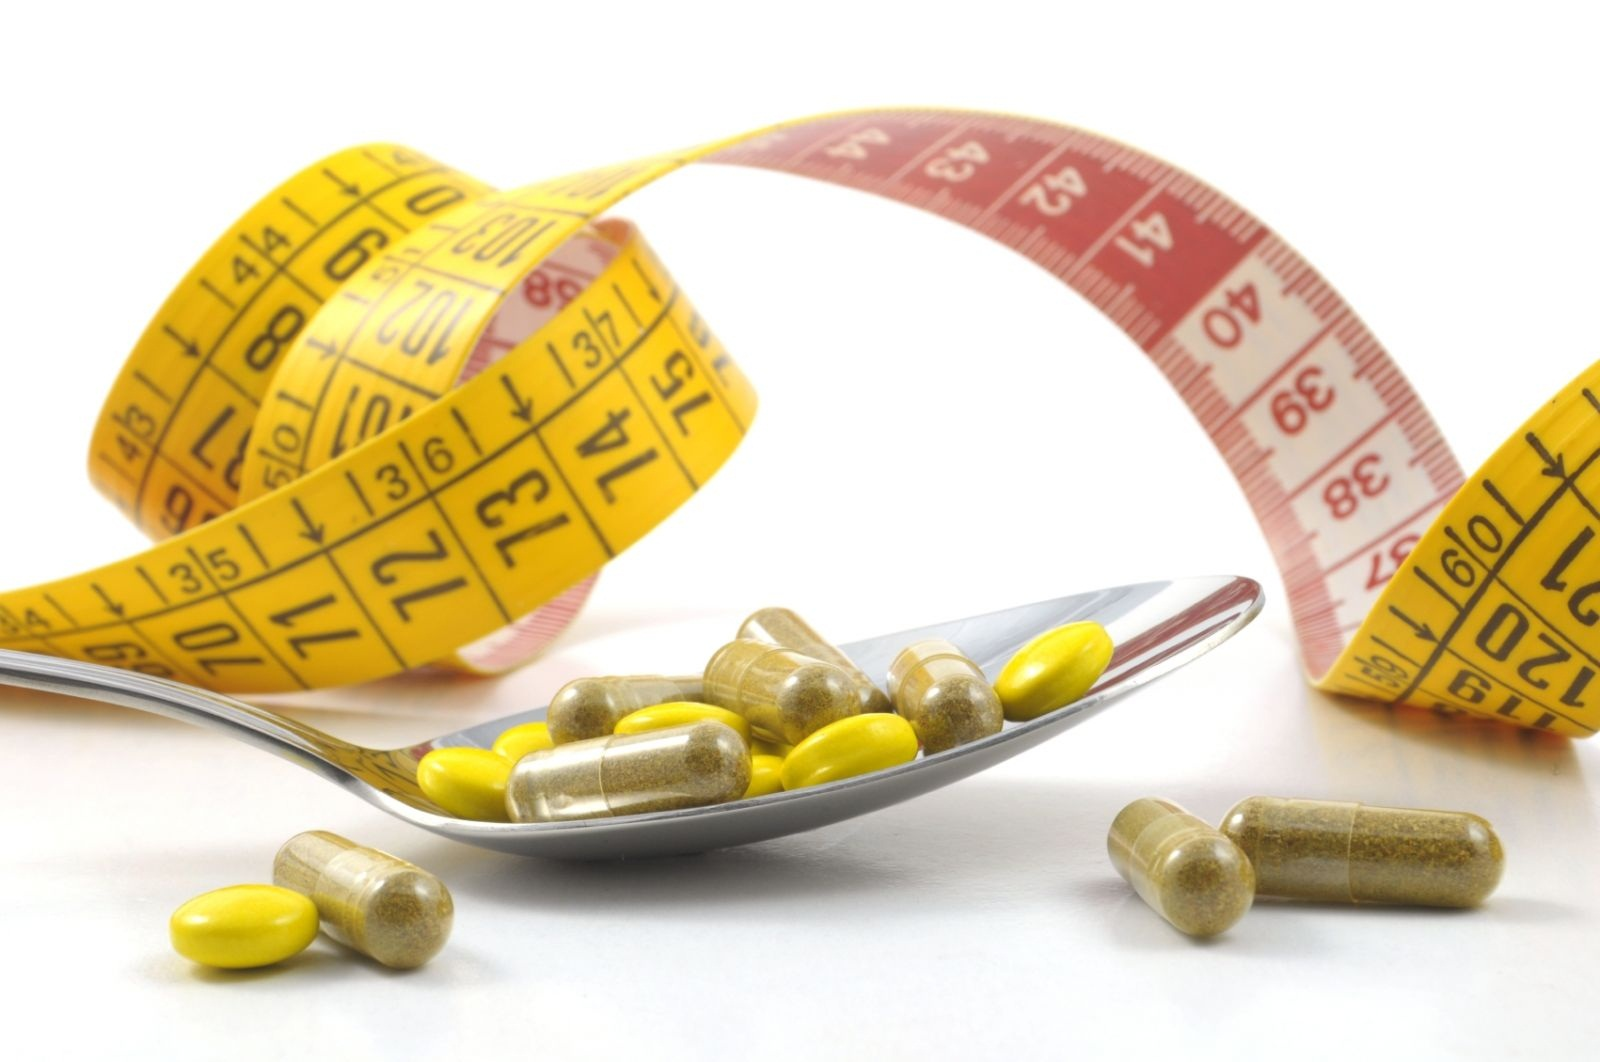 danger of diet pills research The dangers of slimming pills they would only take them if they could research them thoroughly diet experts warn that many people eager the dangers.